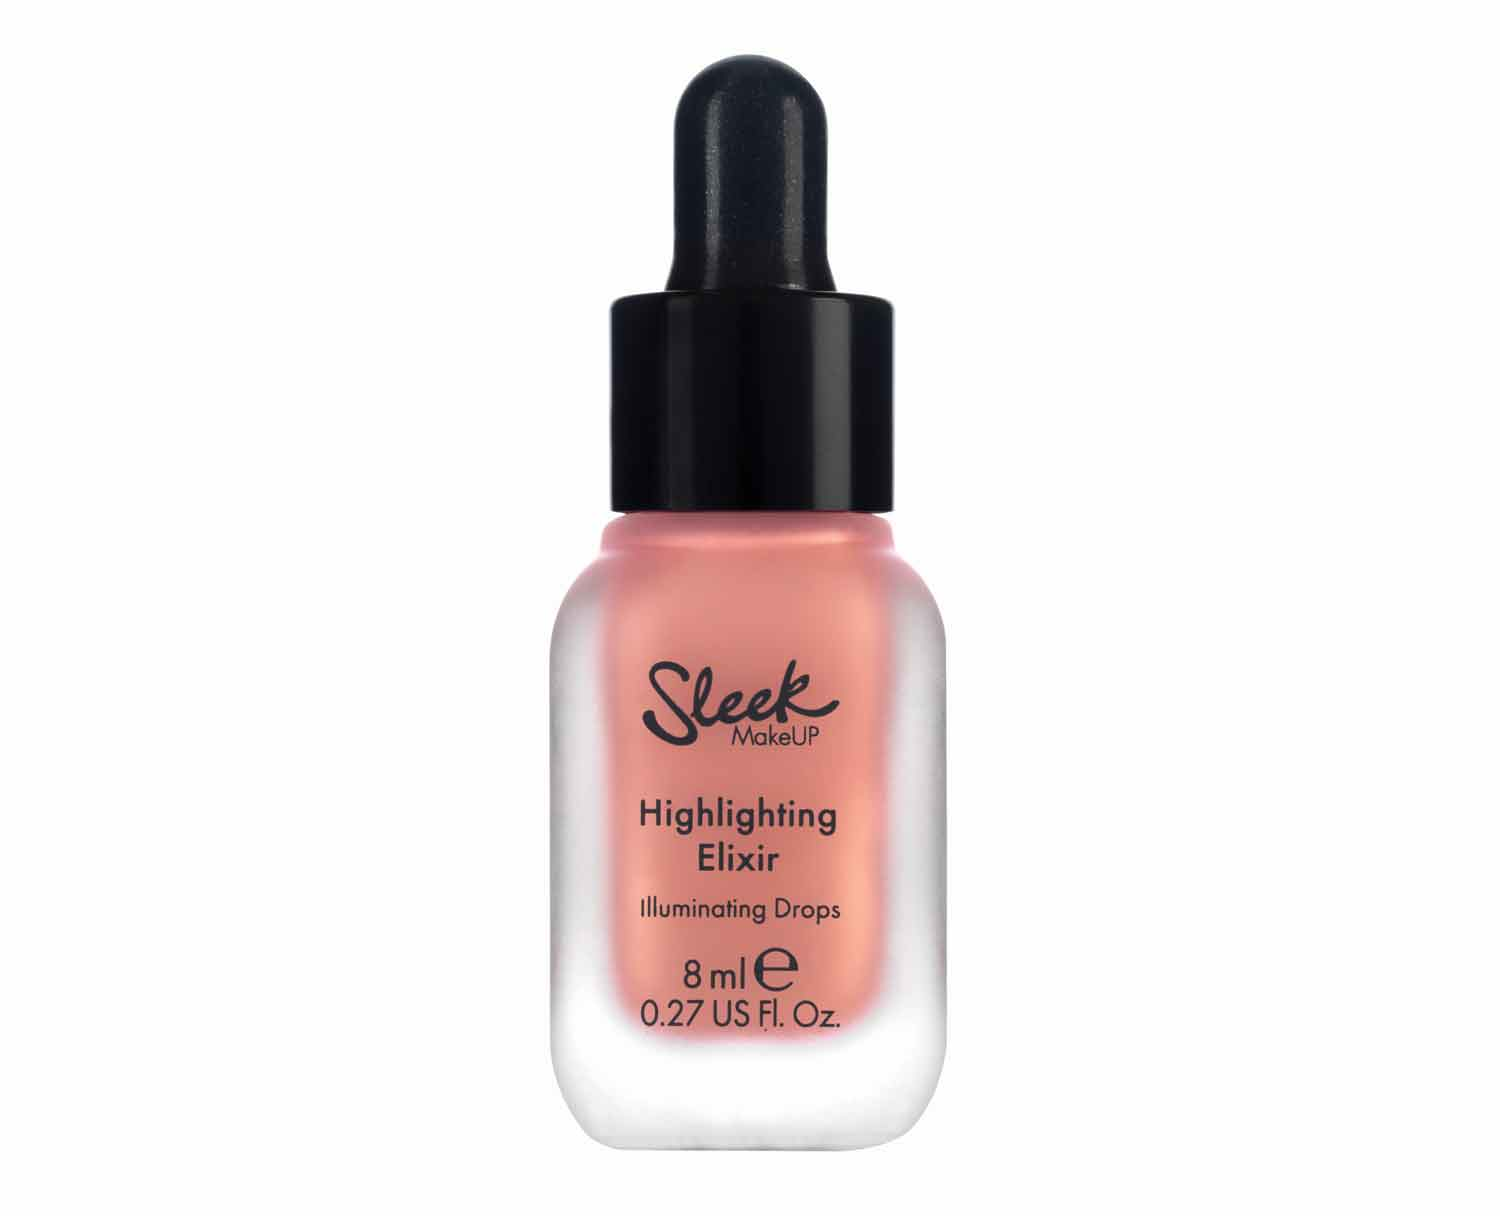 SLEEK MakeUP Highlight Elixir – She Got It Glow